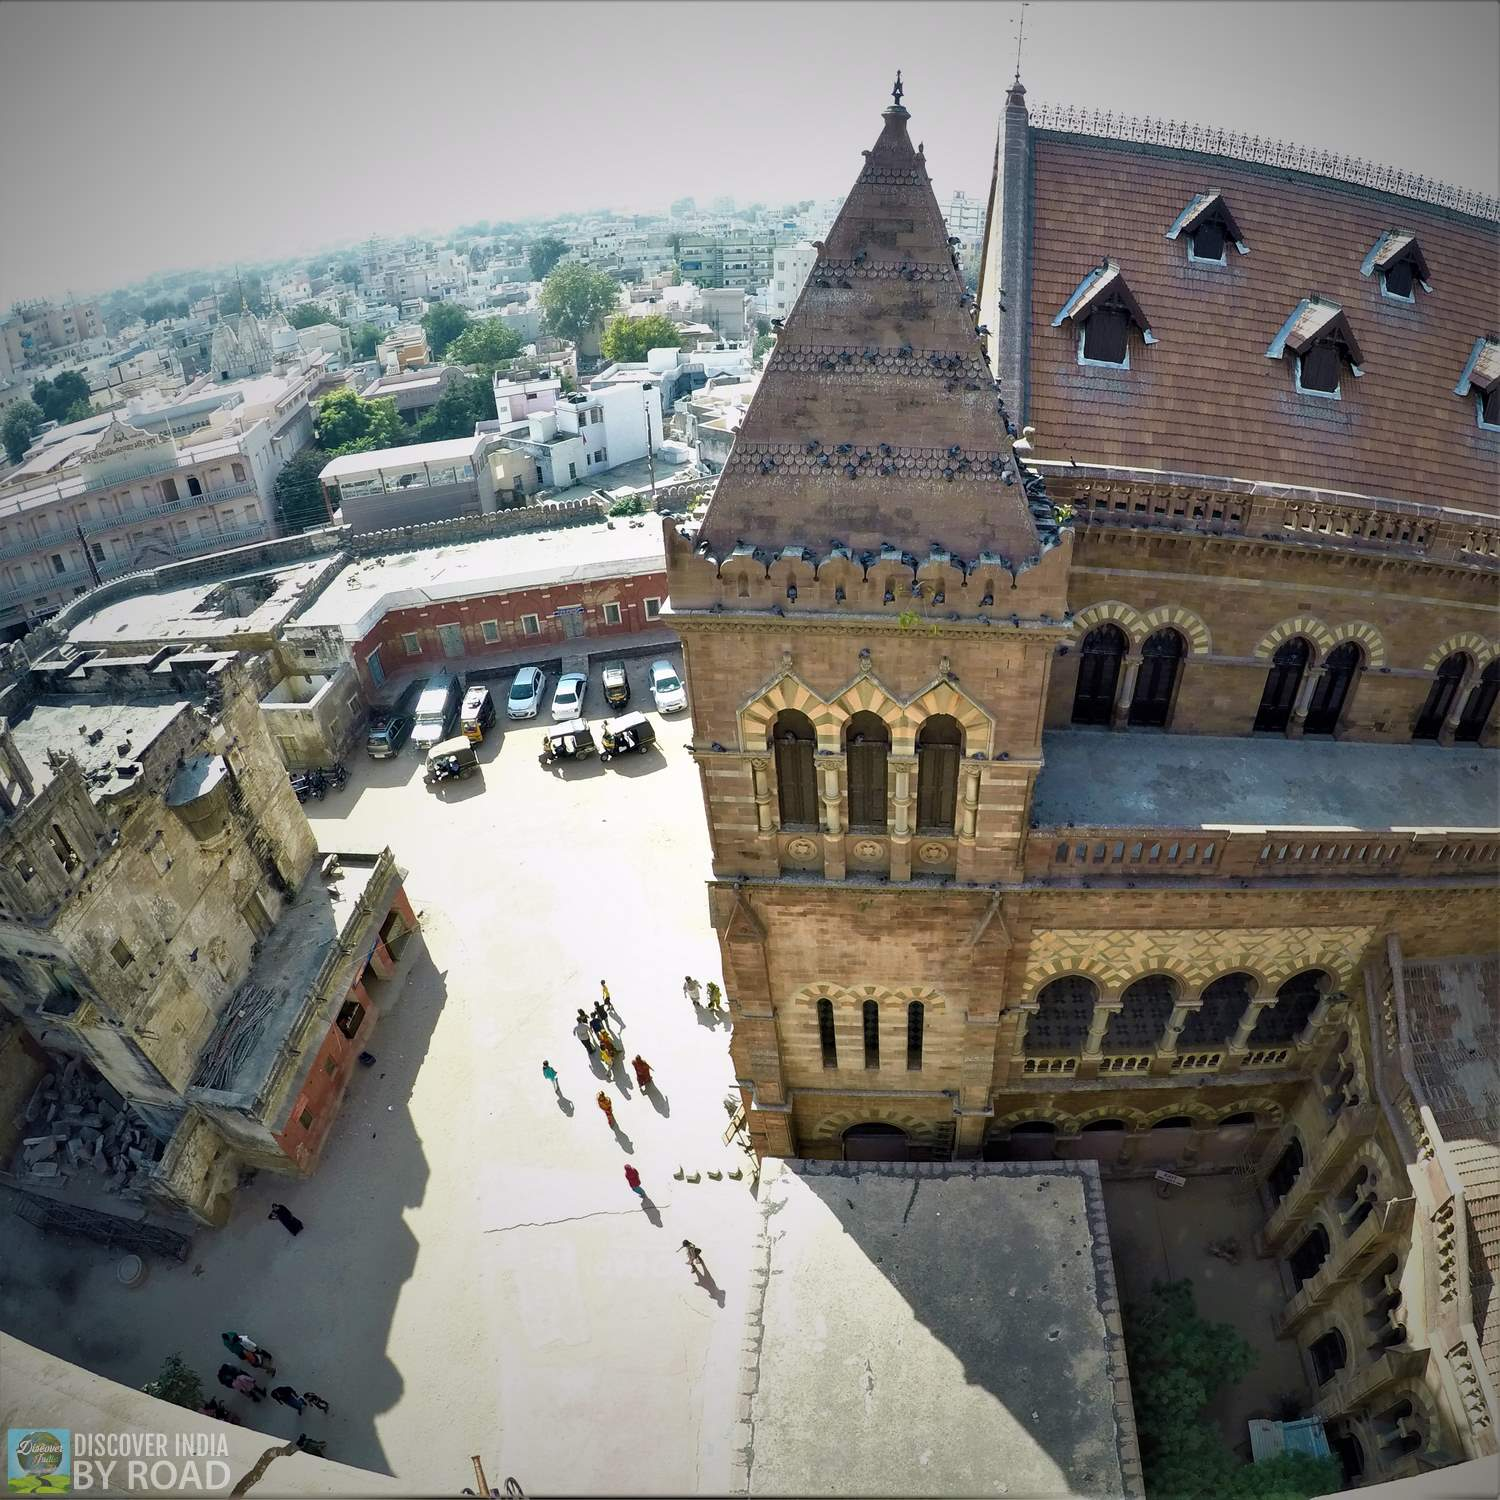 View from Top of Prag Mahal Palace